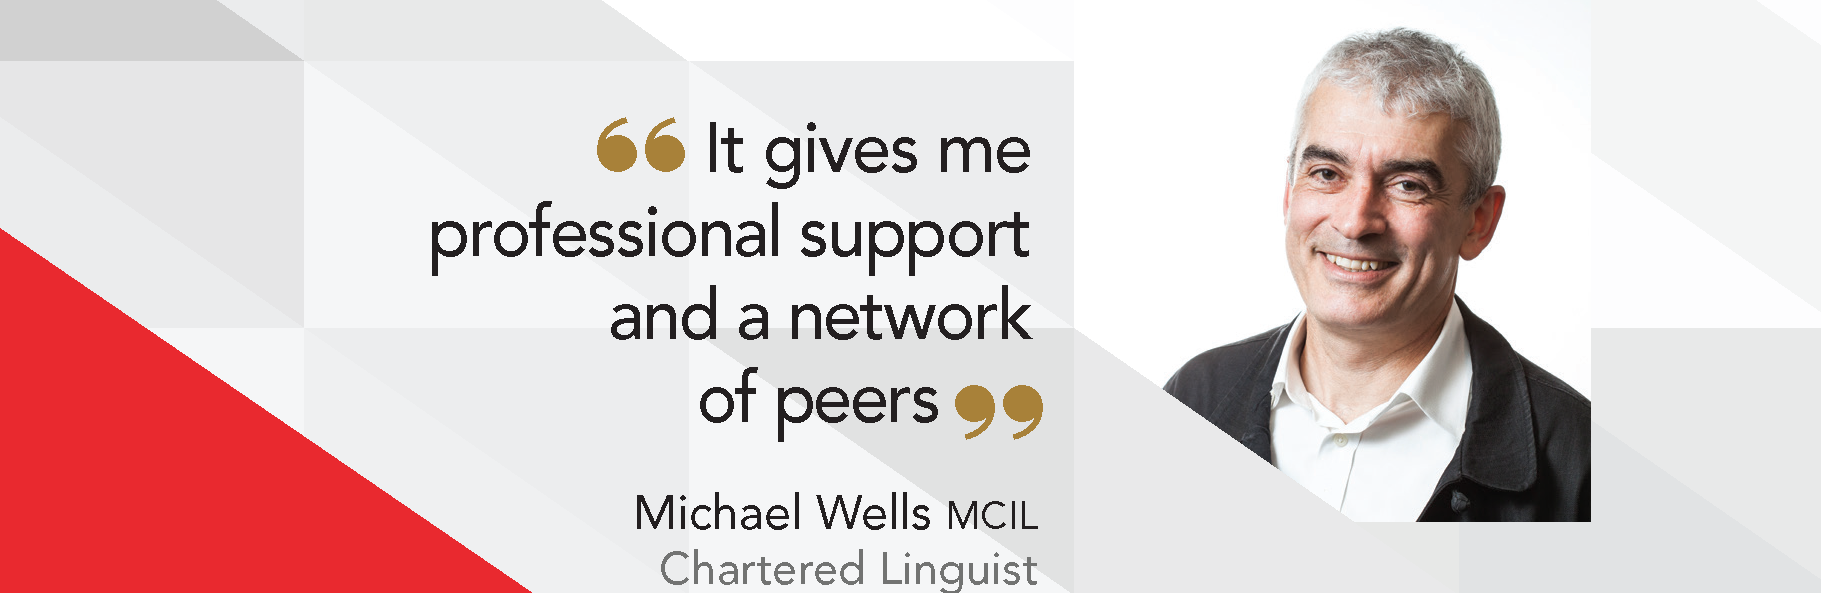 Benefits of becoming a Chartered Linguist